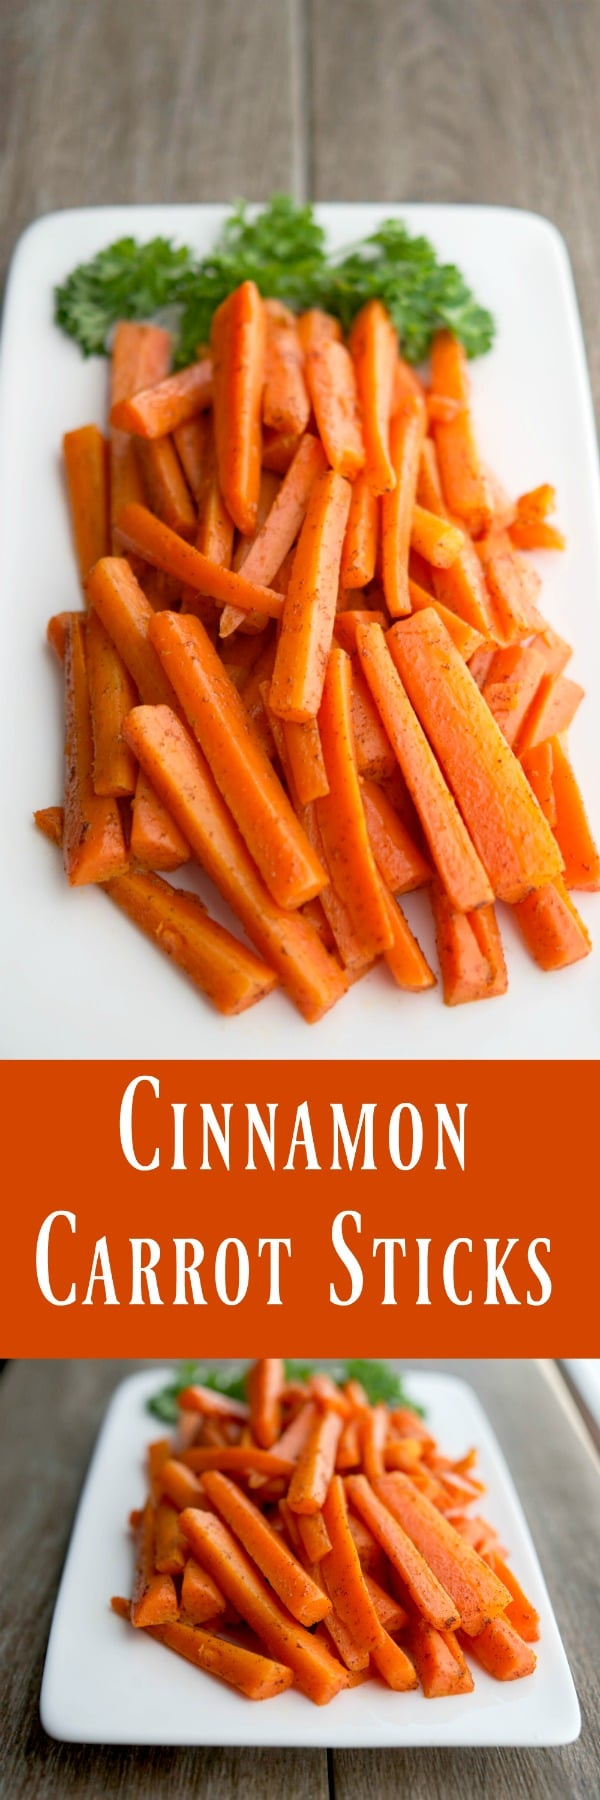 Add these flavorful Cinnamon CarrotSticks to your weeknight vegetable side dish rotation. They're super easy and delicious!